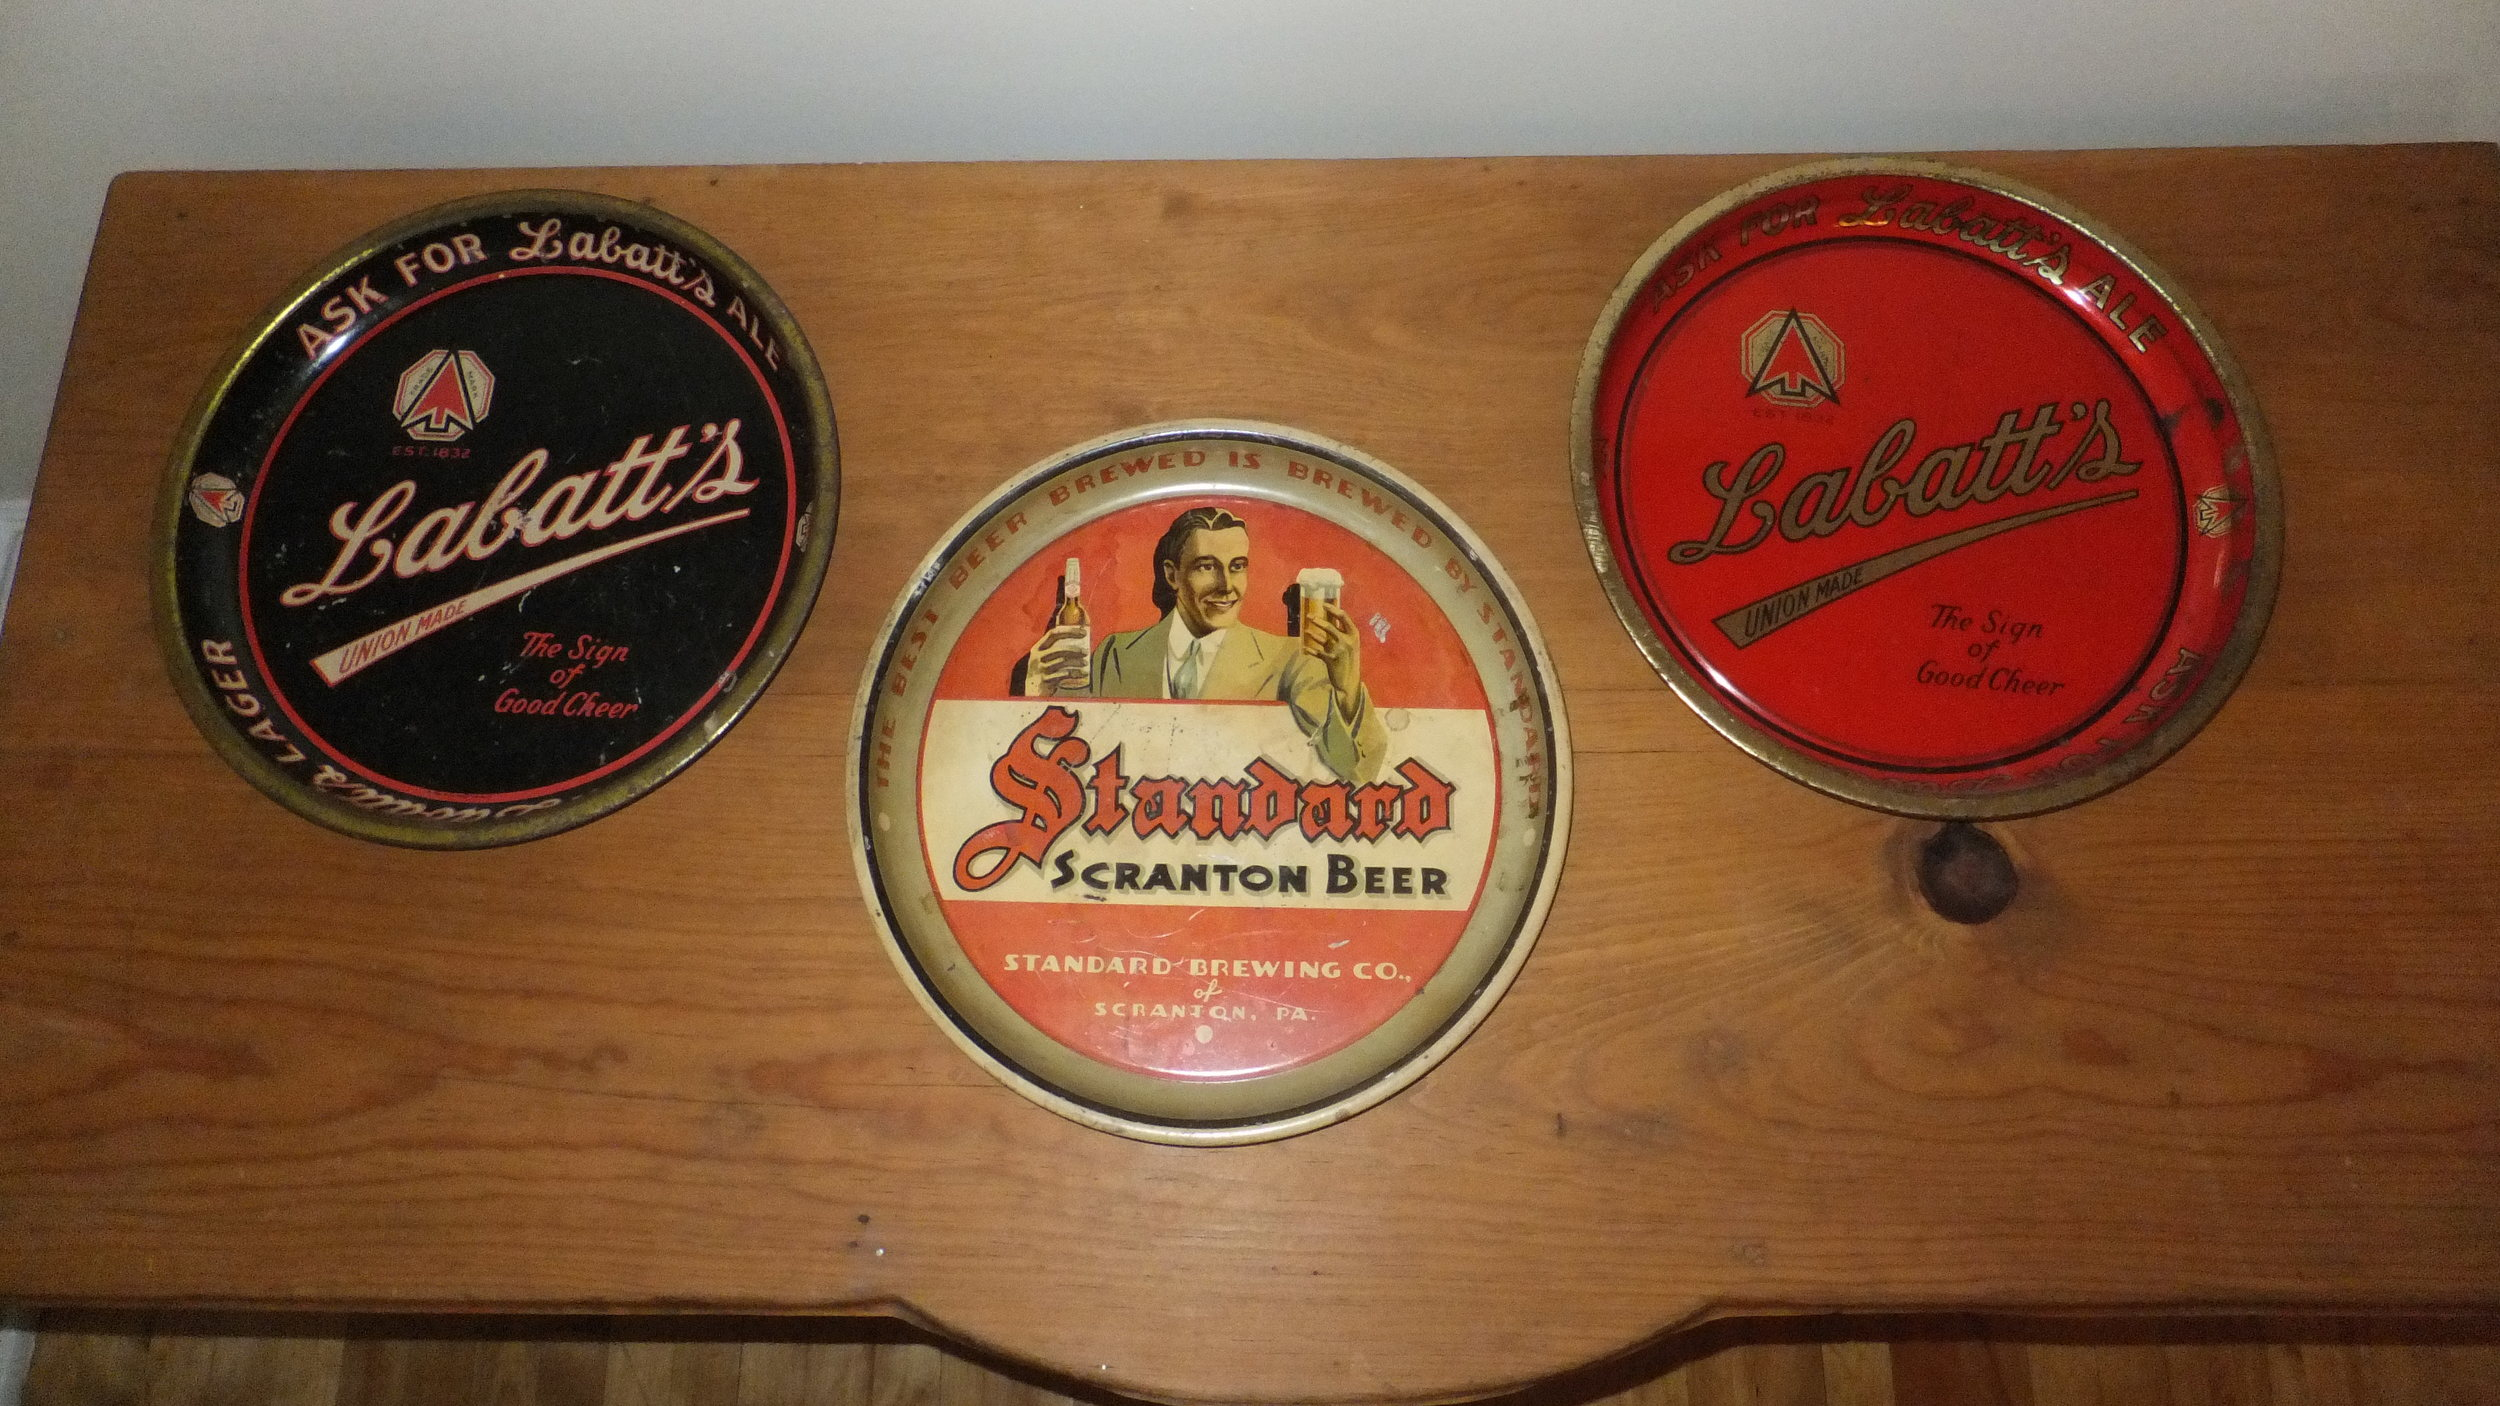 A few trays that I purchased on Ebay. The Labatt trays are from the early-1960s and the Standard tray in the middle is from the 1930s.